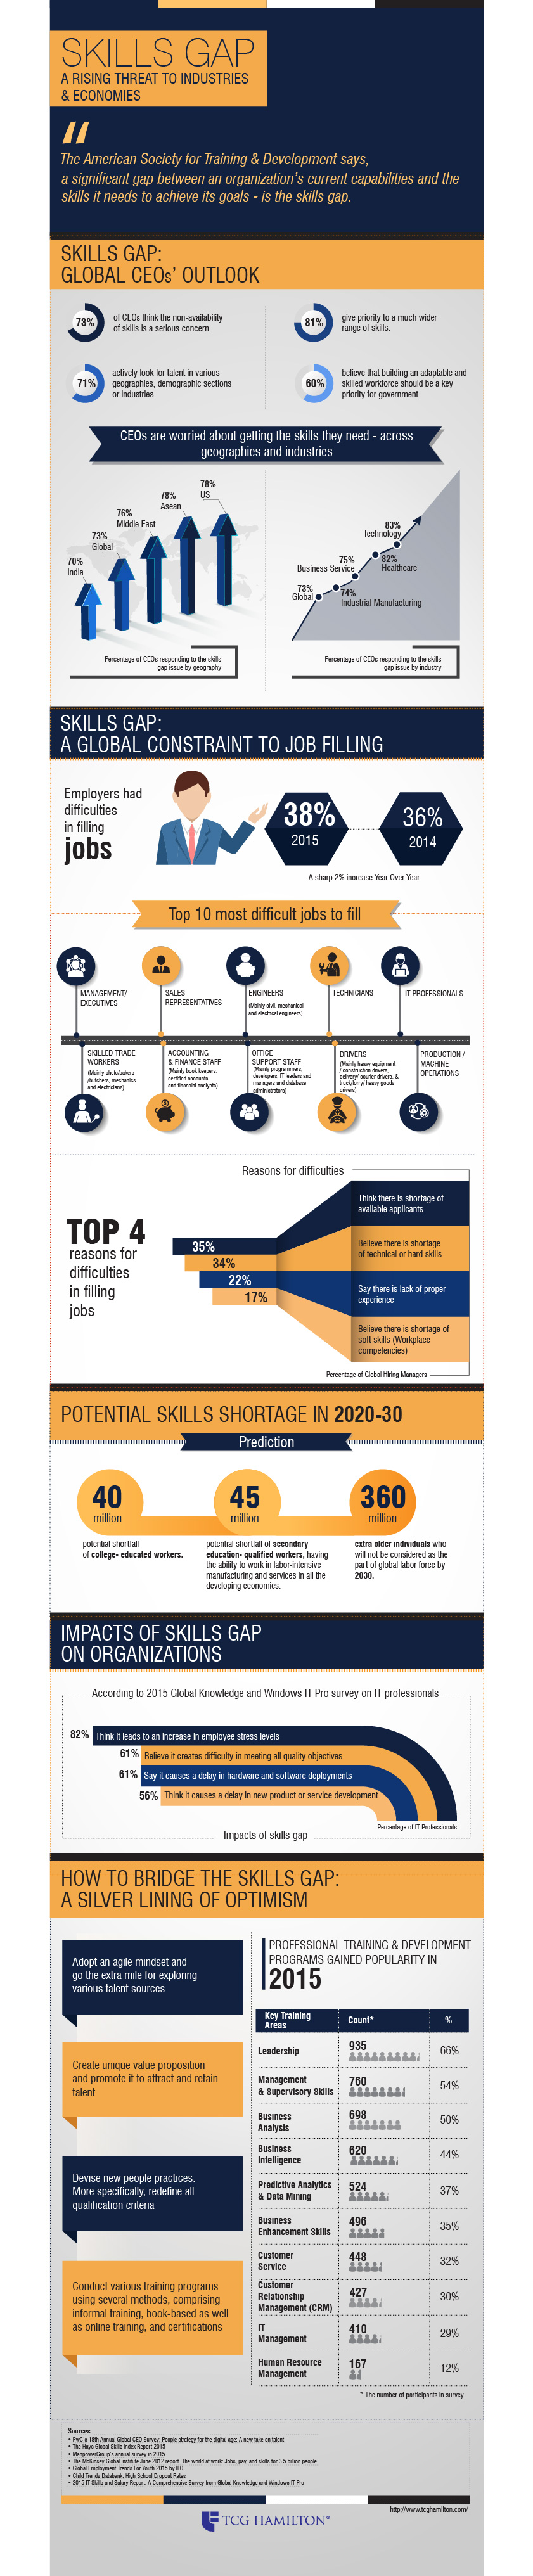 Skills Gap - A Rising Threat to Industries & Economies